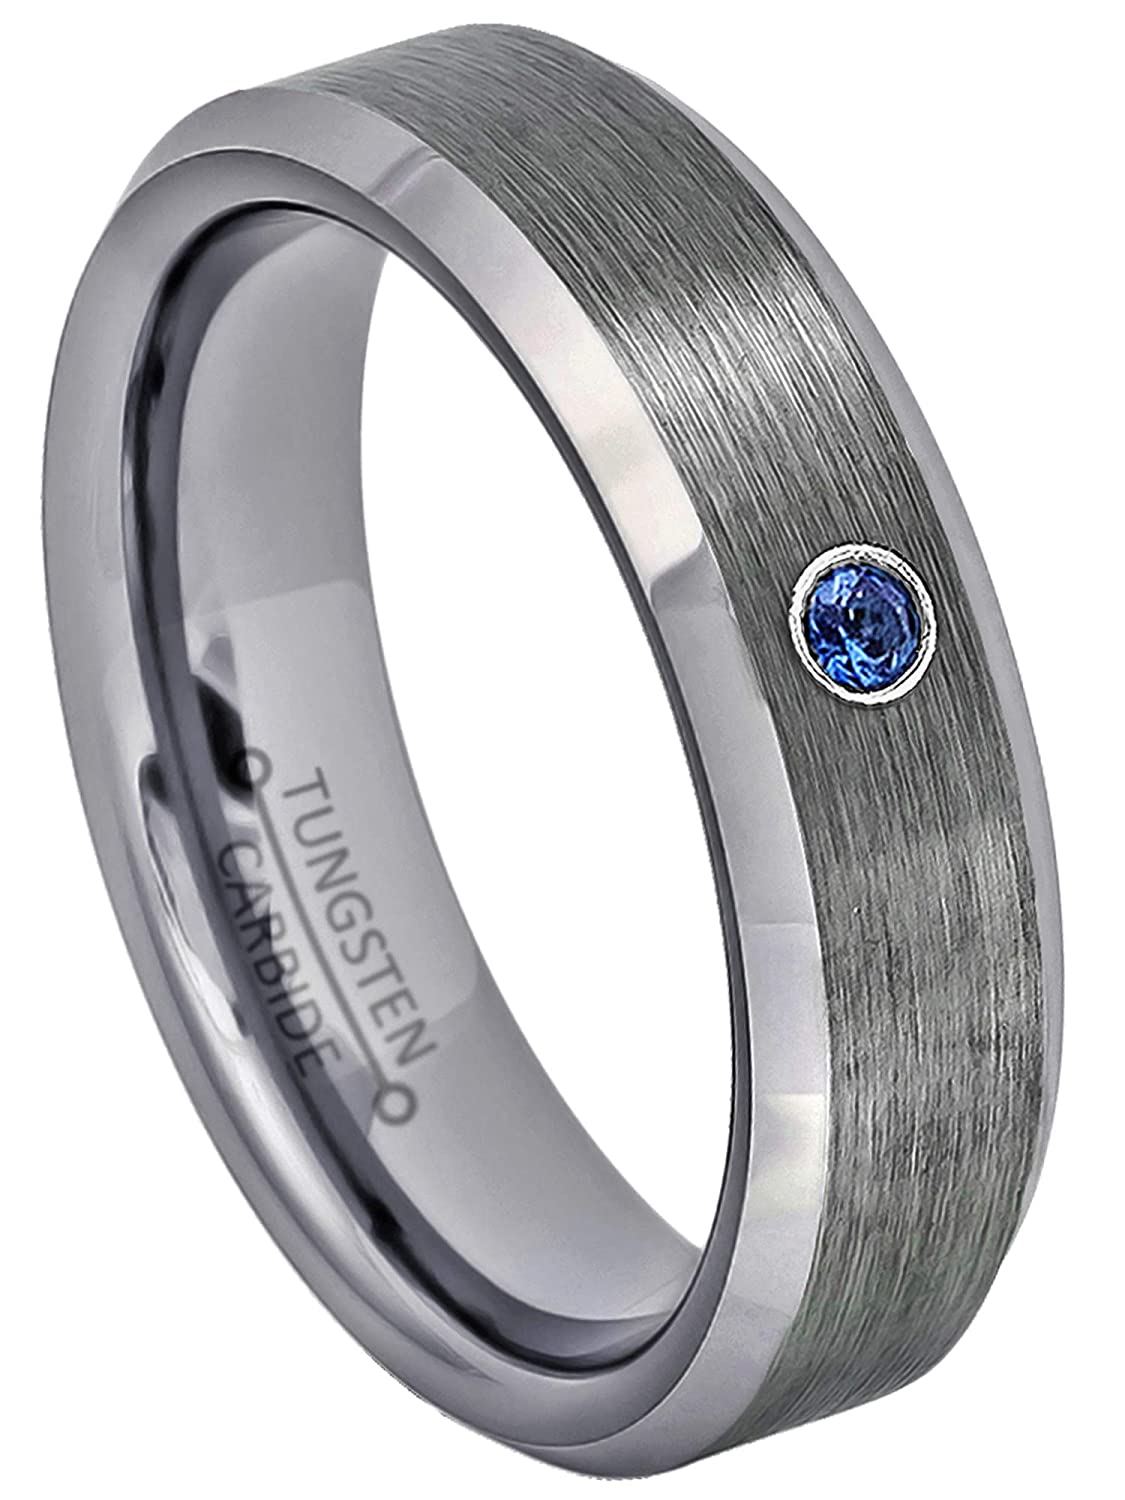 8MM Polished 2-Tone Yellow Gold Plated Comfort Fit Beveled Edge Tungsten Carbide Wedding Band September Birthstone Ring Jewelry Avalanche 0.07ct Blue Sapphire Tungsten Ring